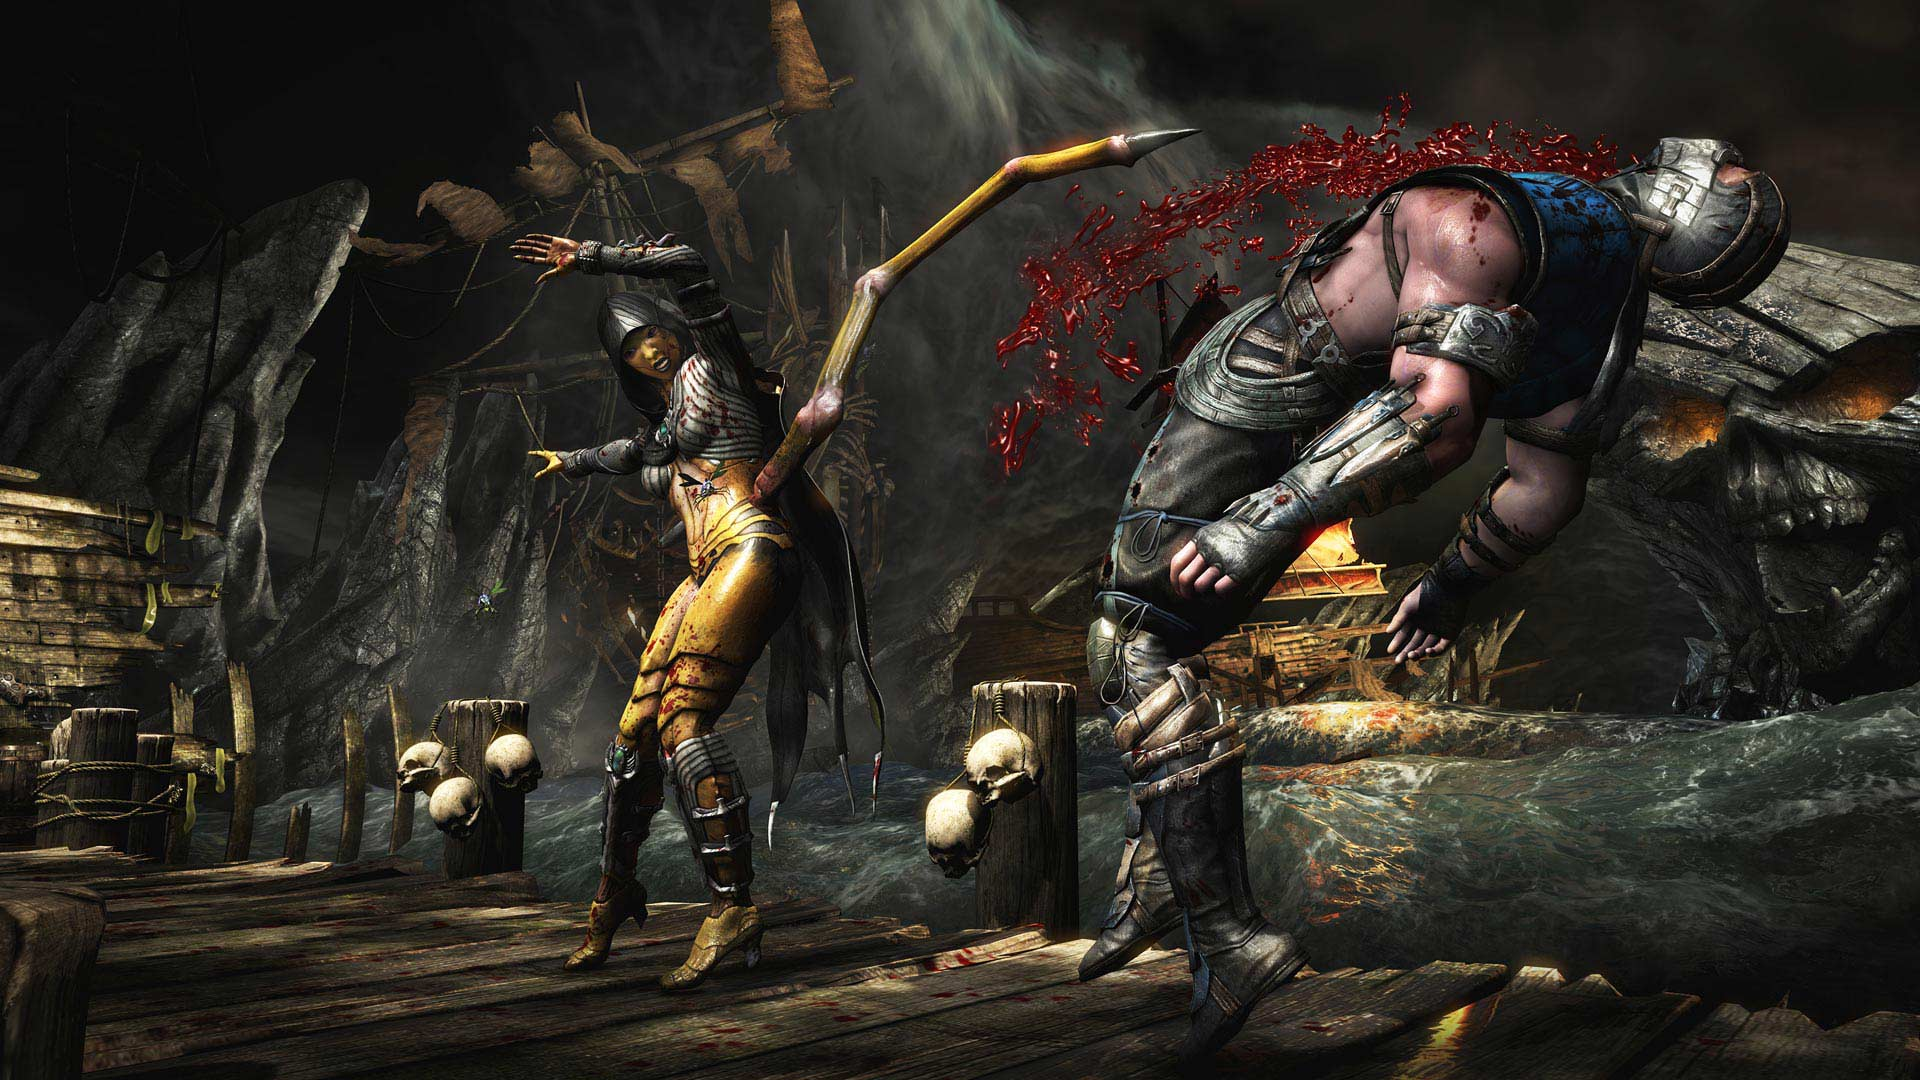 Mortal Kombat X ESPAÑOL PC Full PROPER + Update v20150908 (RELOADED) + REPACK 7 DVD5 (JPW) 3